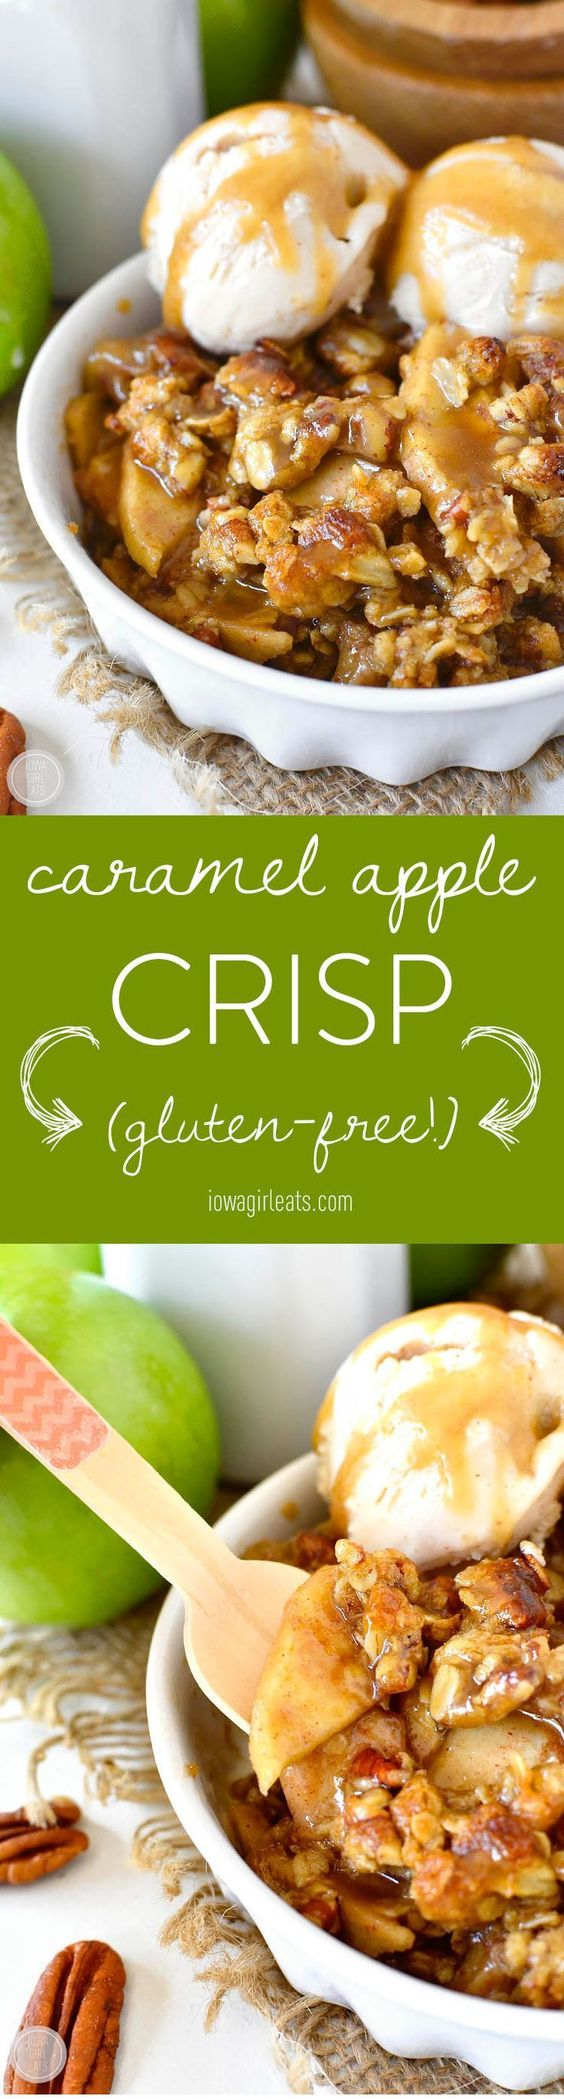 Gluten-free Caramel Apple Crisp with Easy Caramel Sauce is decadent and delicious. Serve warm with a scoop of ice cream for a heavenly fall treat! #thinkfisher | iowagirleats.com